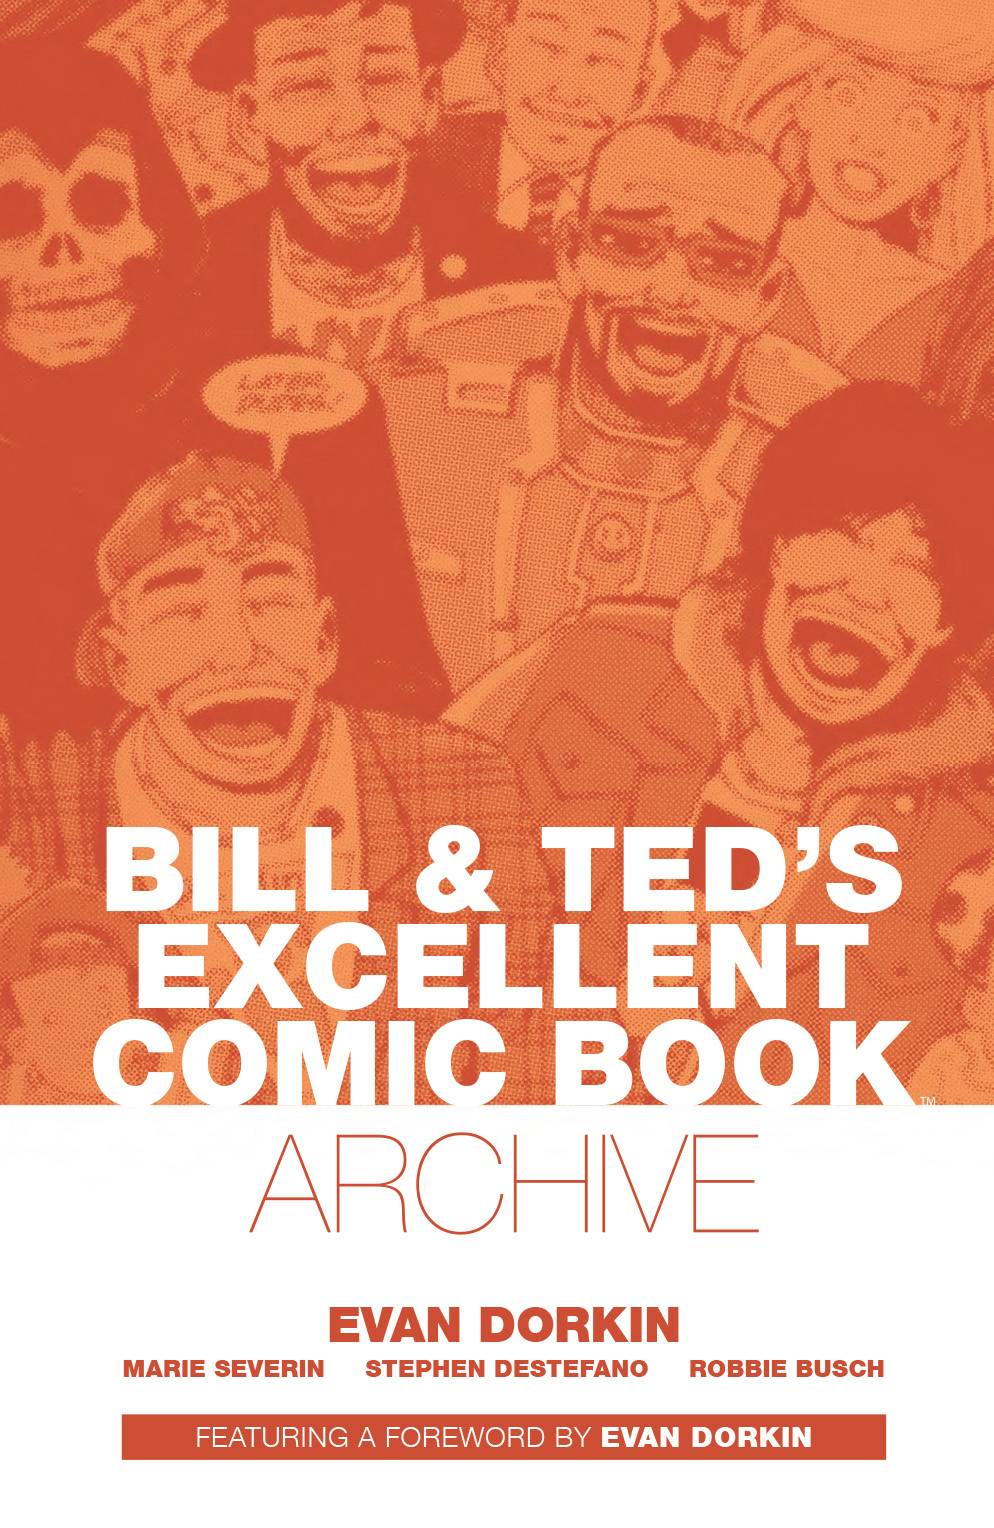 Bill & Ted's Most Excellent Comic Book Archive HC